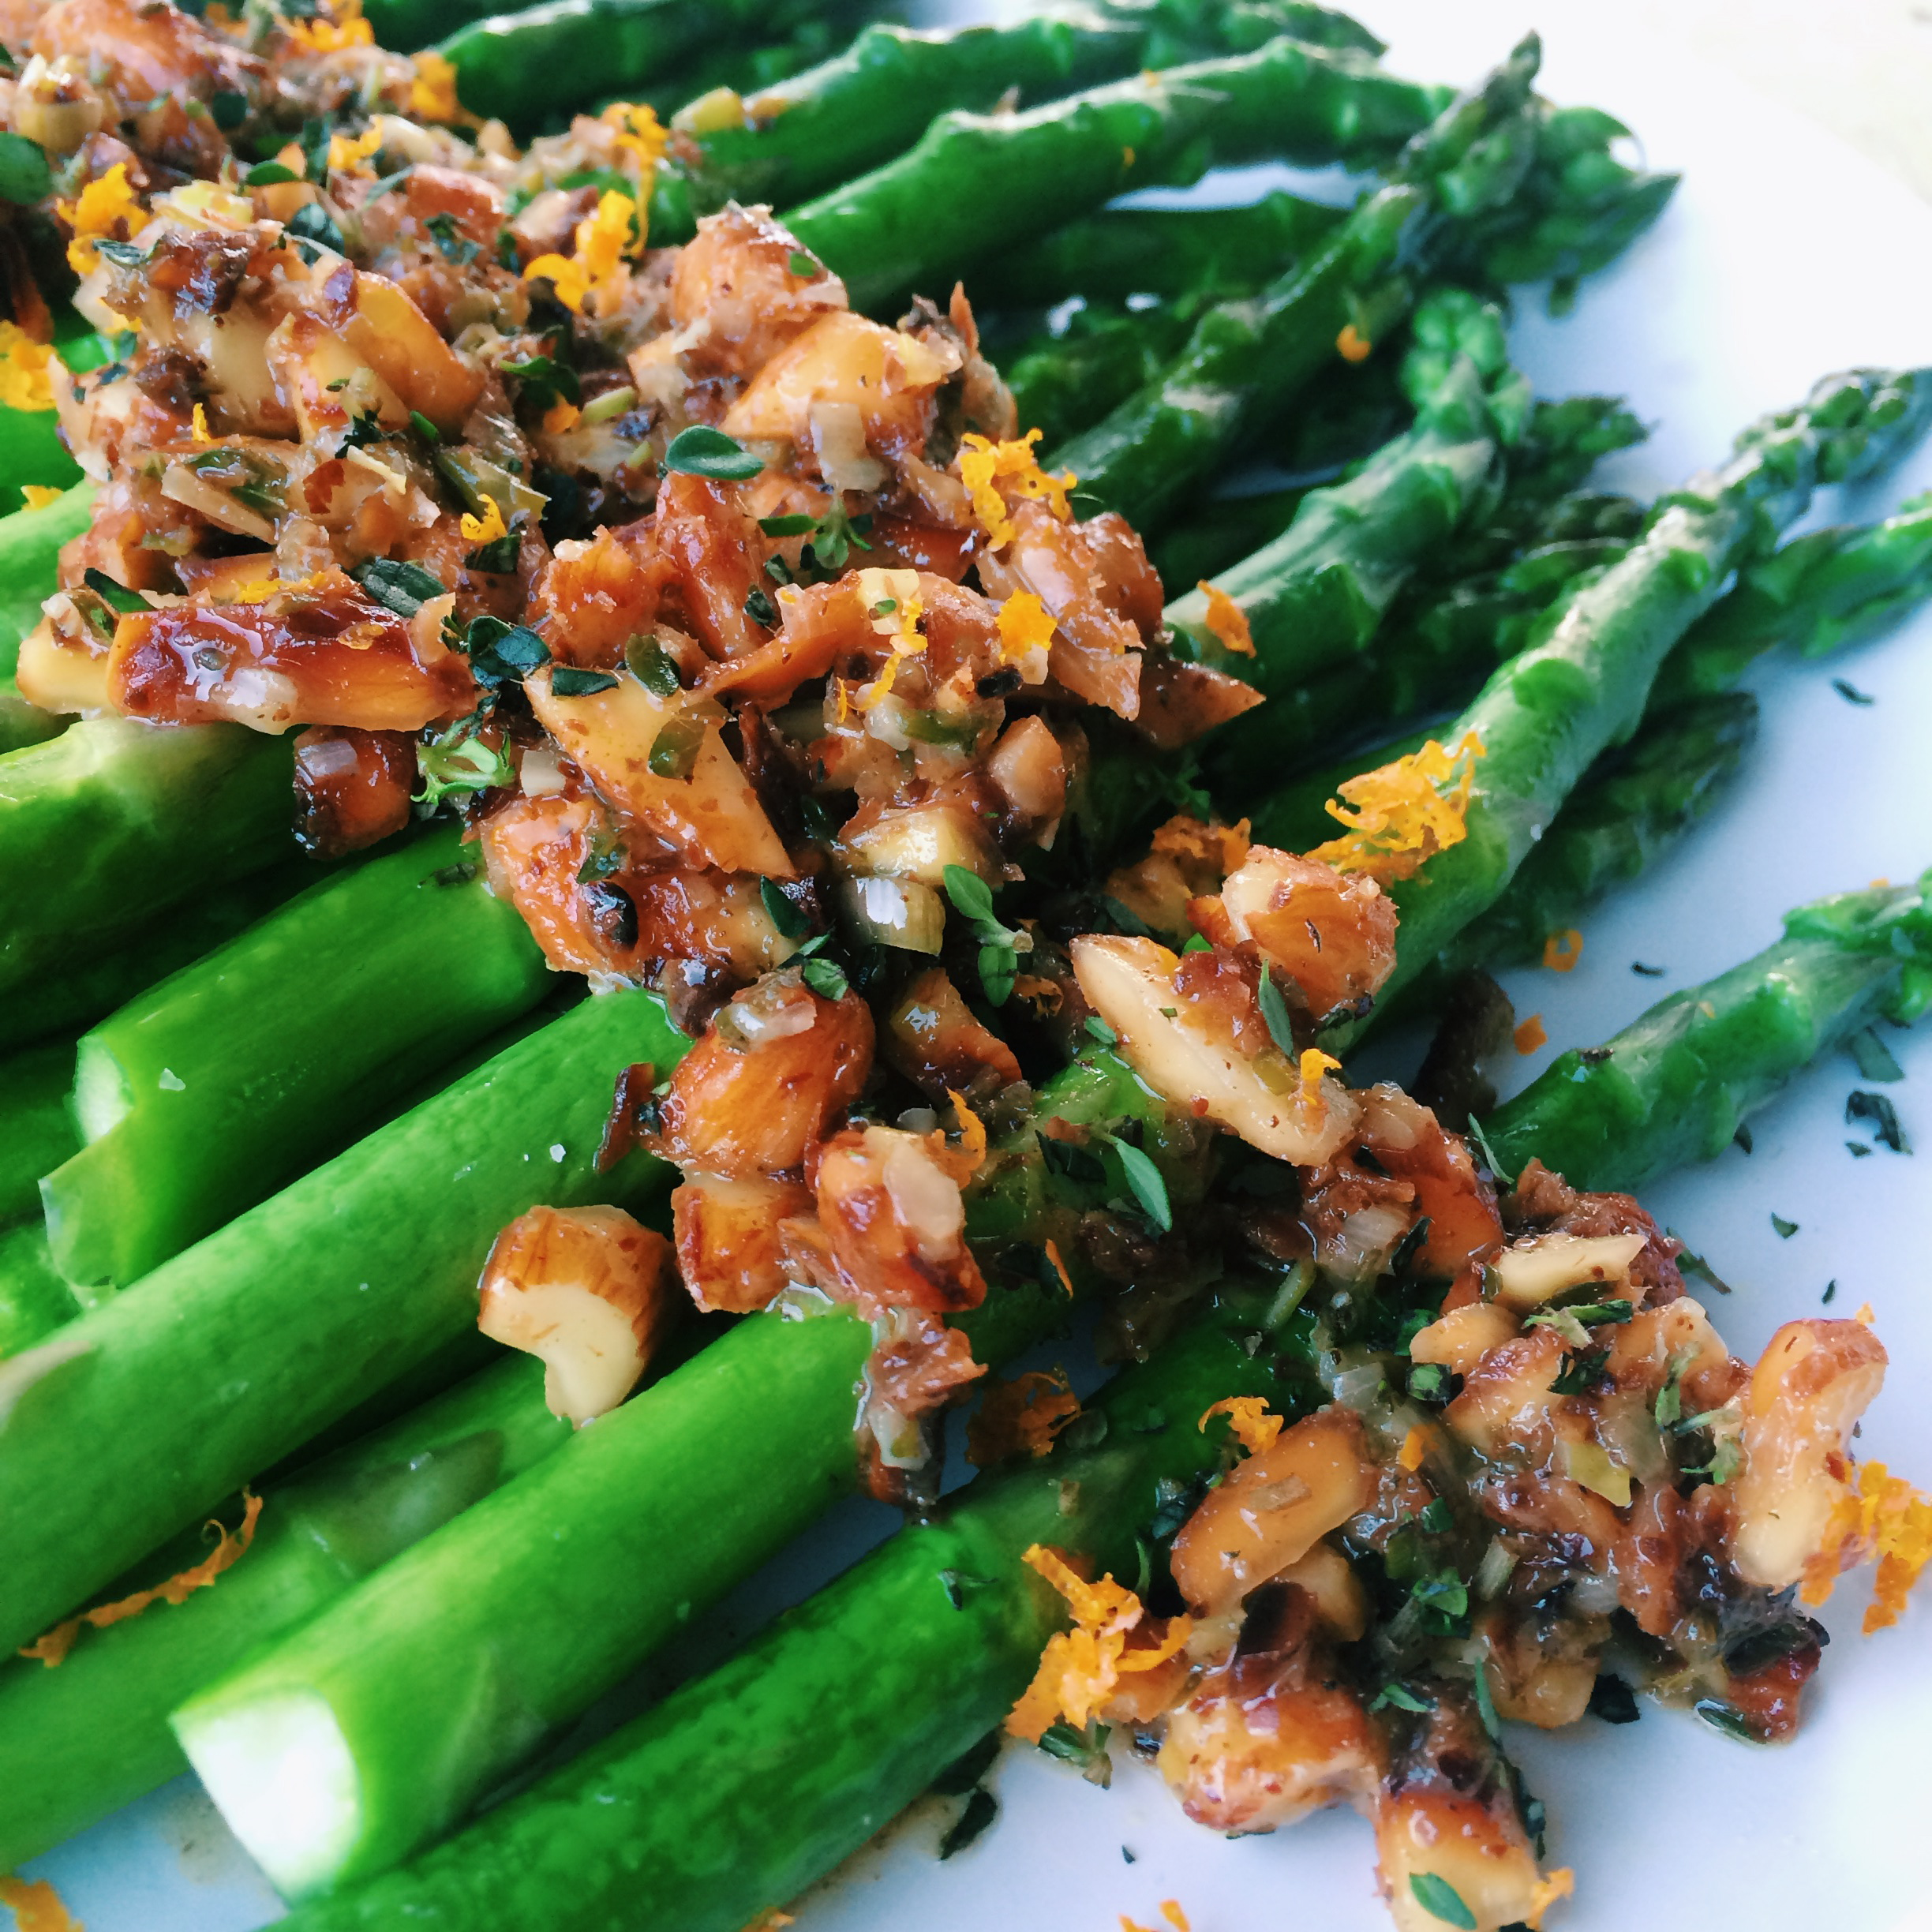 Pan steamed asparagus with an orange-almond sauce: (serves 4)